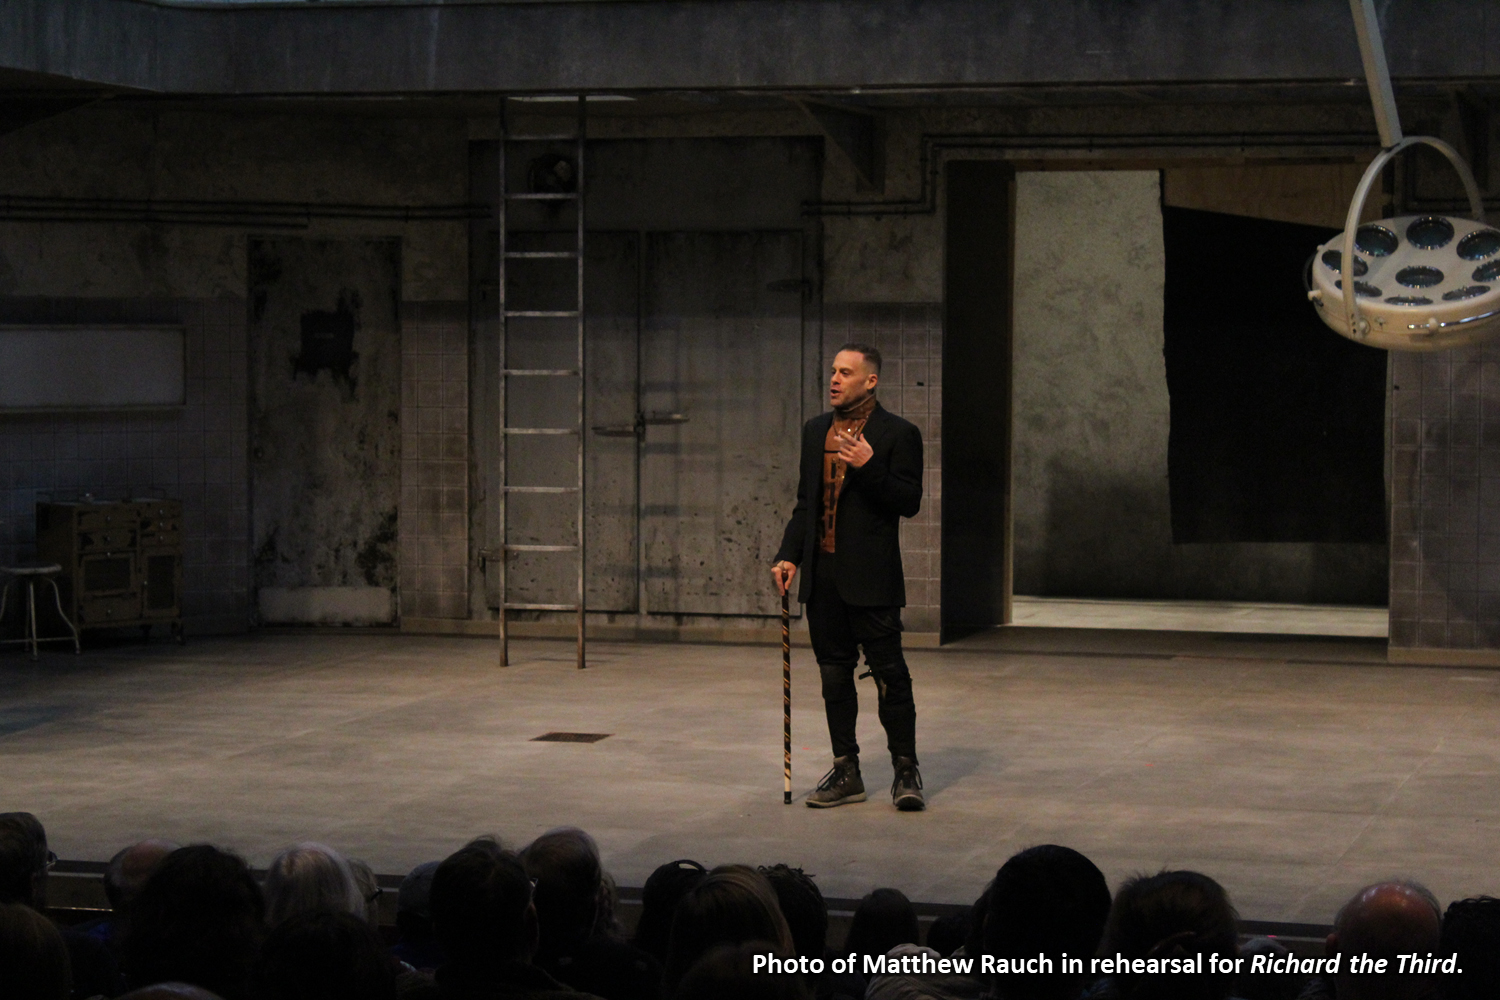 Photo of Matthew Rauch in rehearsal for Richard the Third.